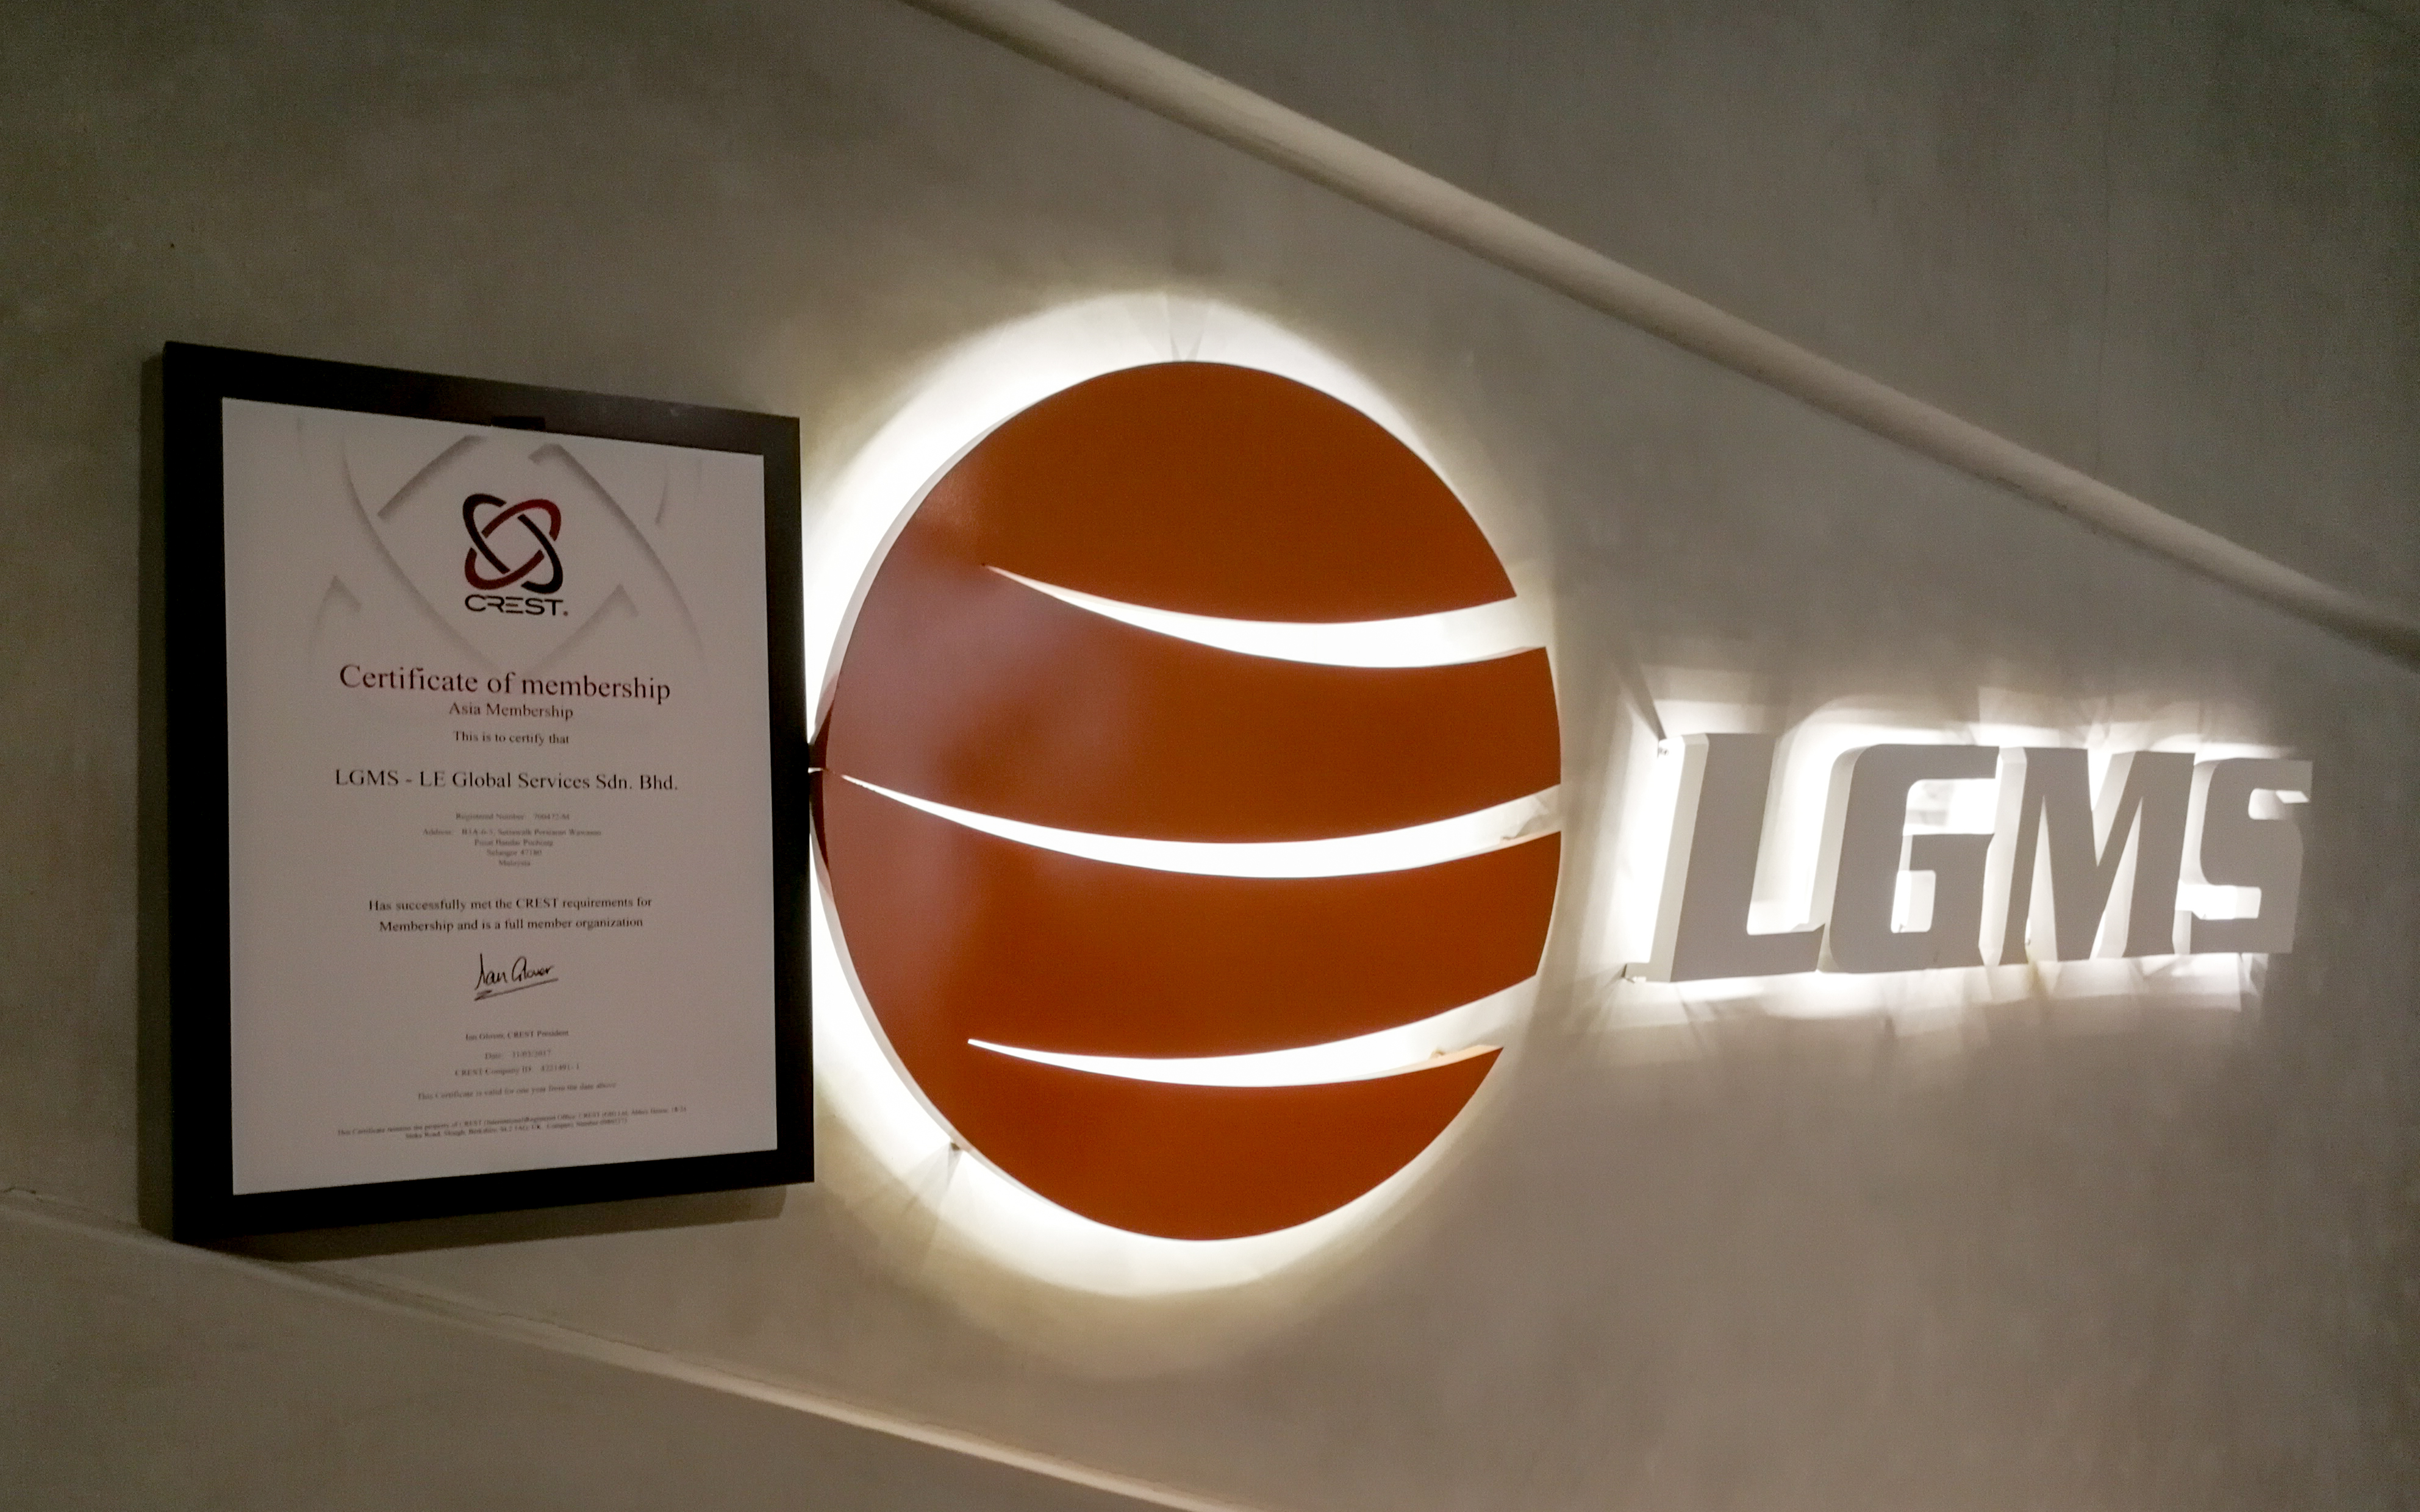 Lgms first in malaysia to gain crest uk accreditation enterprise lgms first in malaysia to gain crest uk accreditation enterprise it news xflitez Gallery